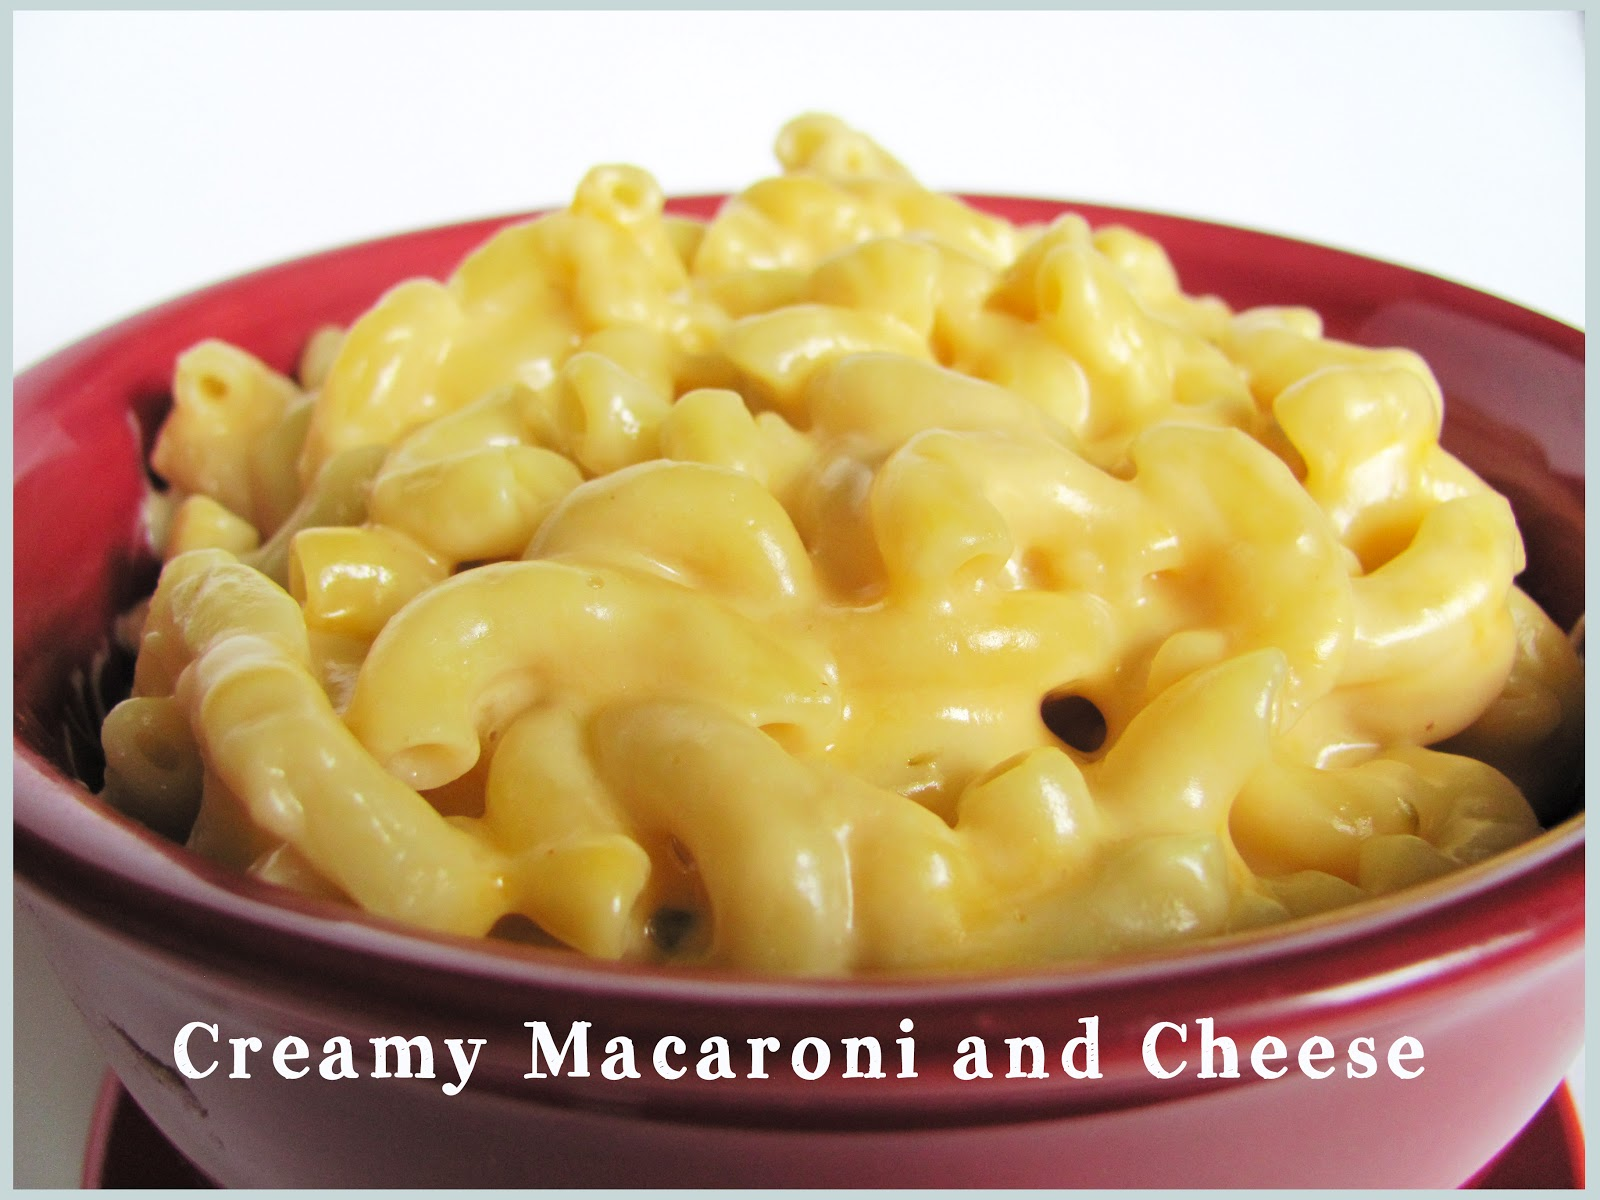 Feeding My Giant: Creamy Macaroni and Cheese